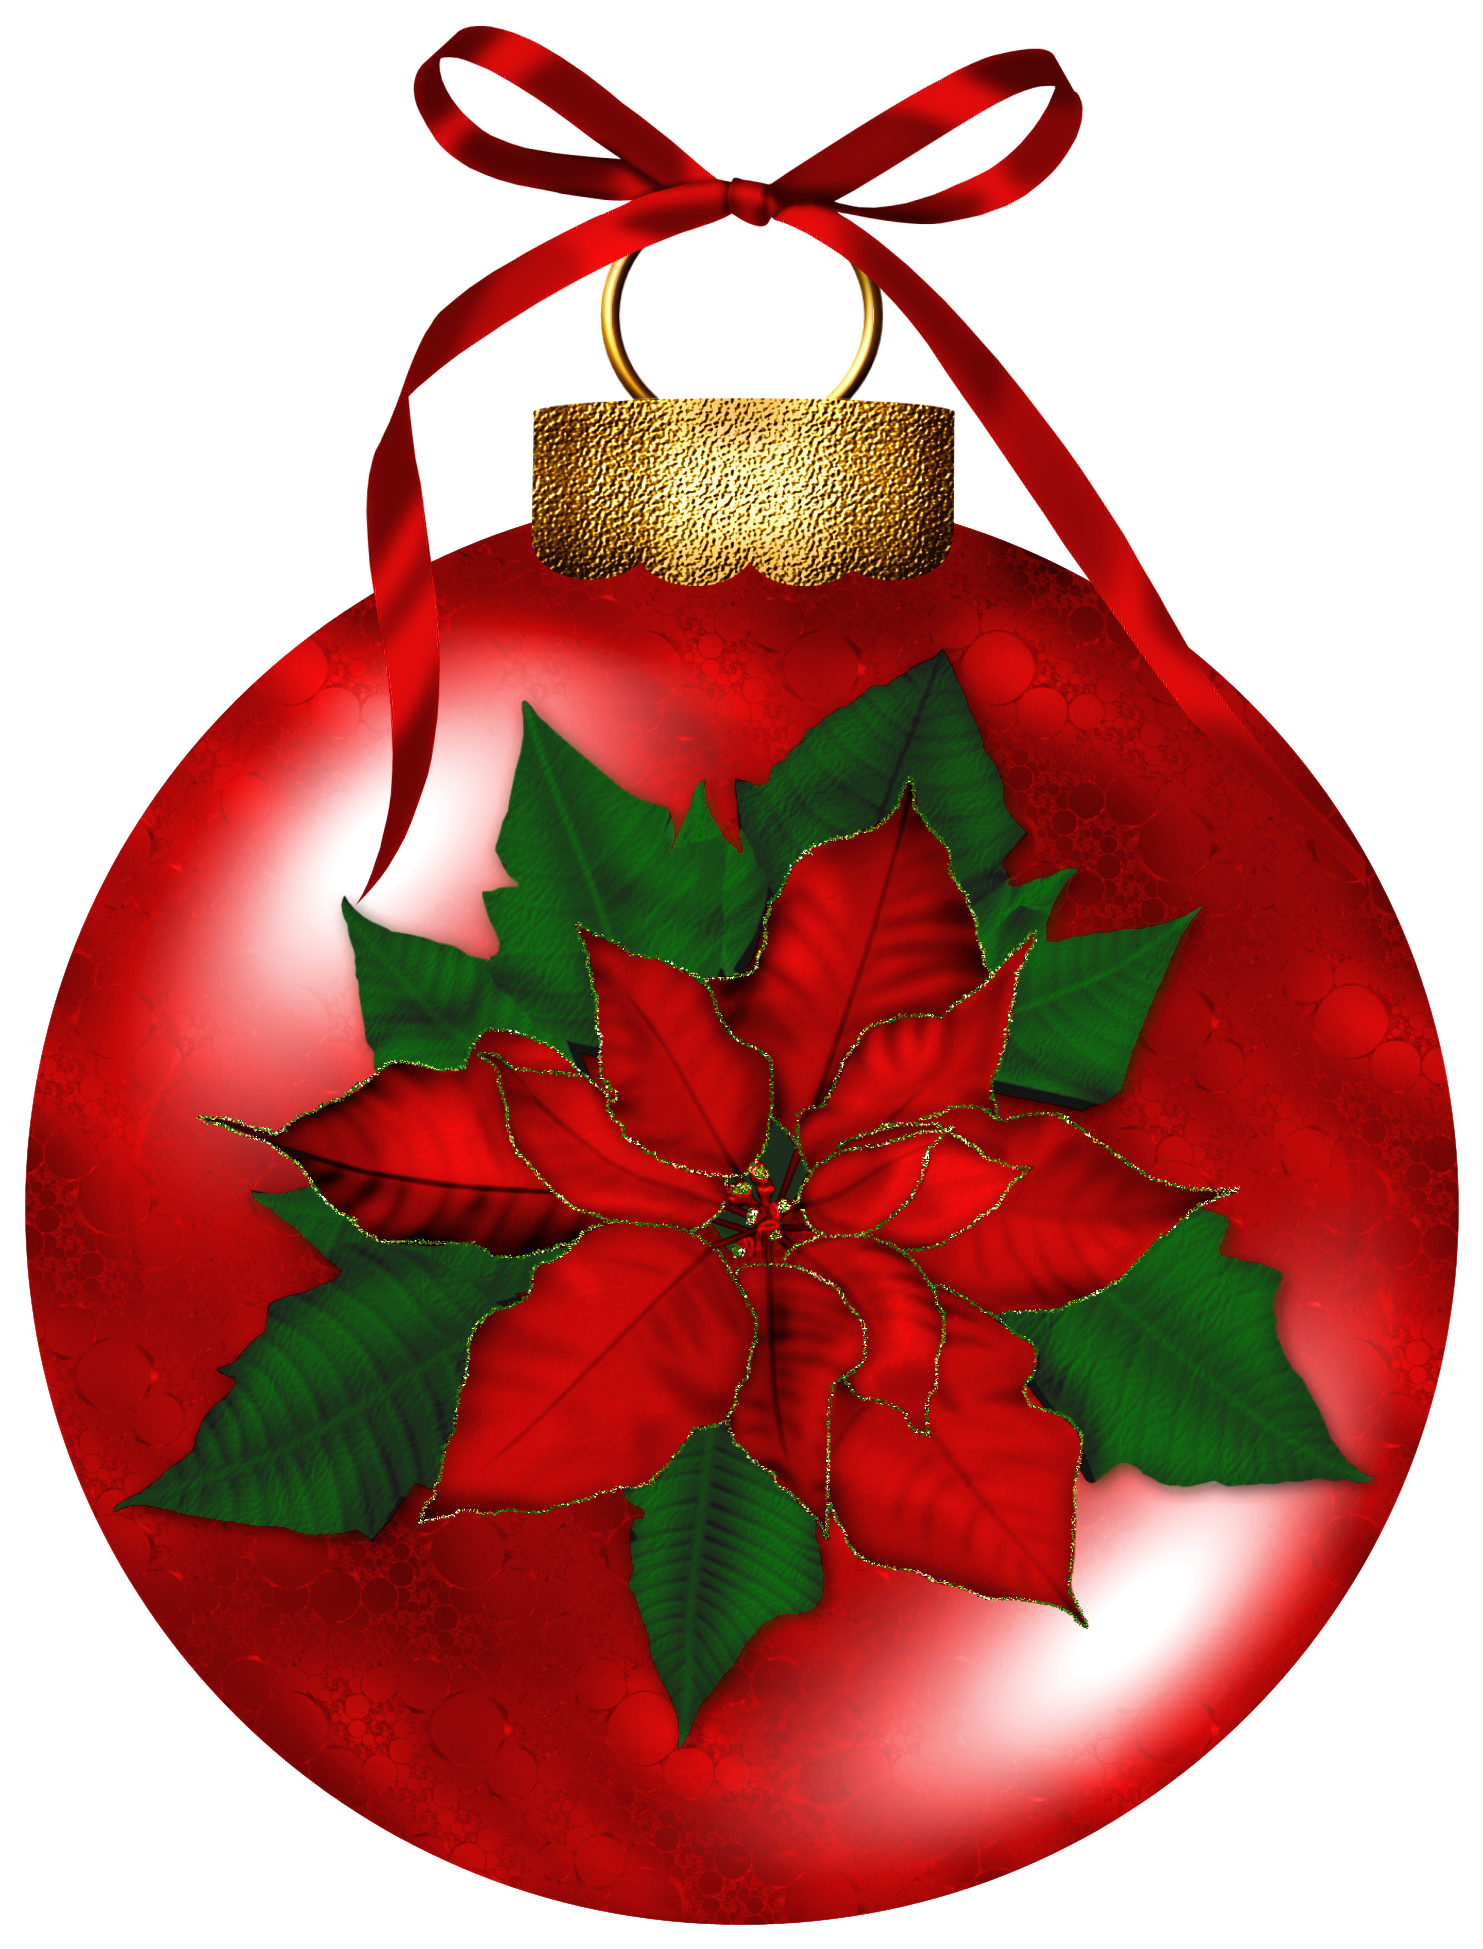 Poinsettia Clip Art Related Keywords & Suggestions - Poinsettia Clip ...